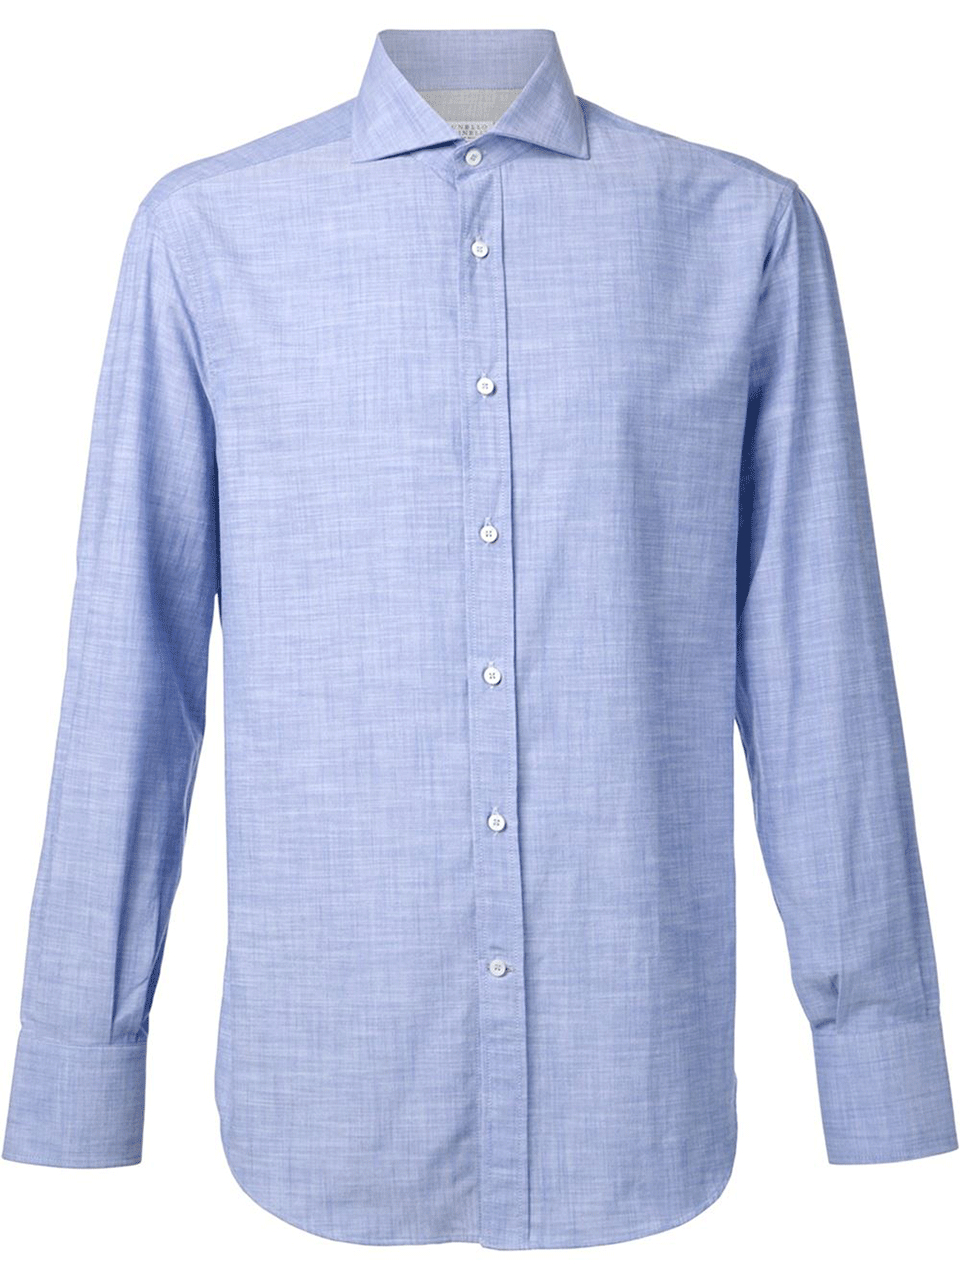 Lyst brunello cucinelli spread collar oxford shirt in for Men s spread collar shirts